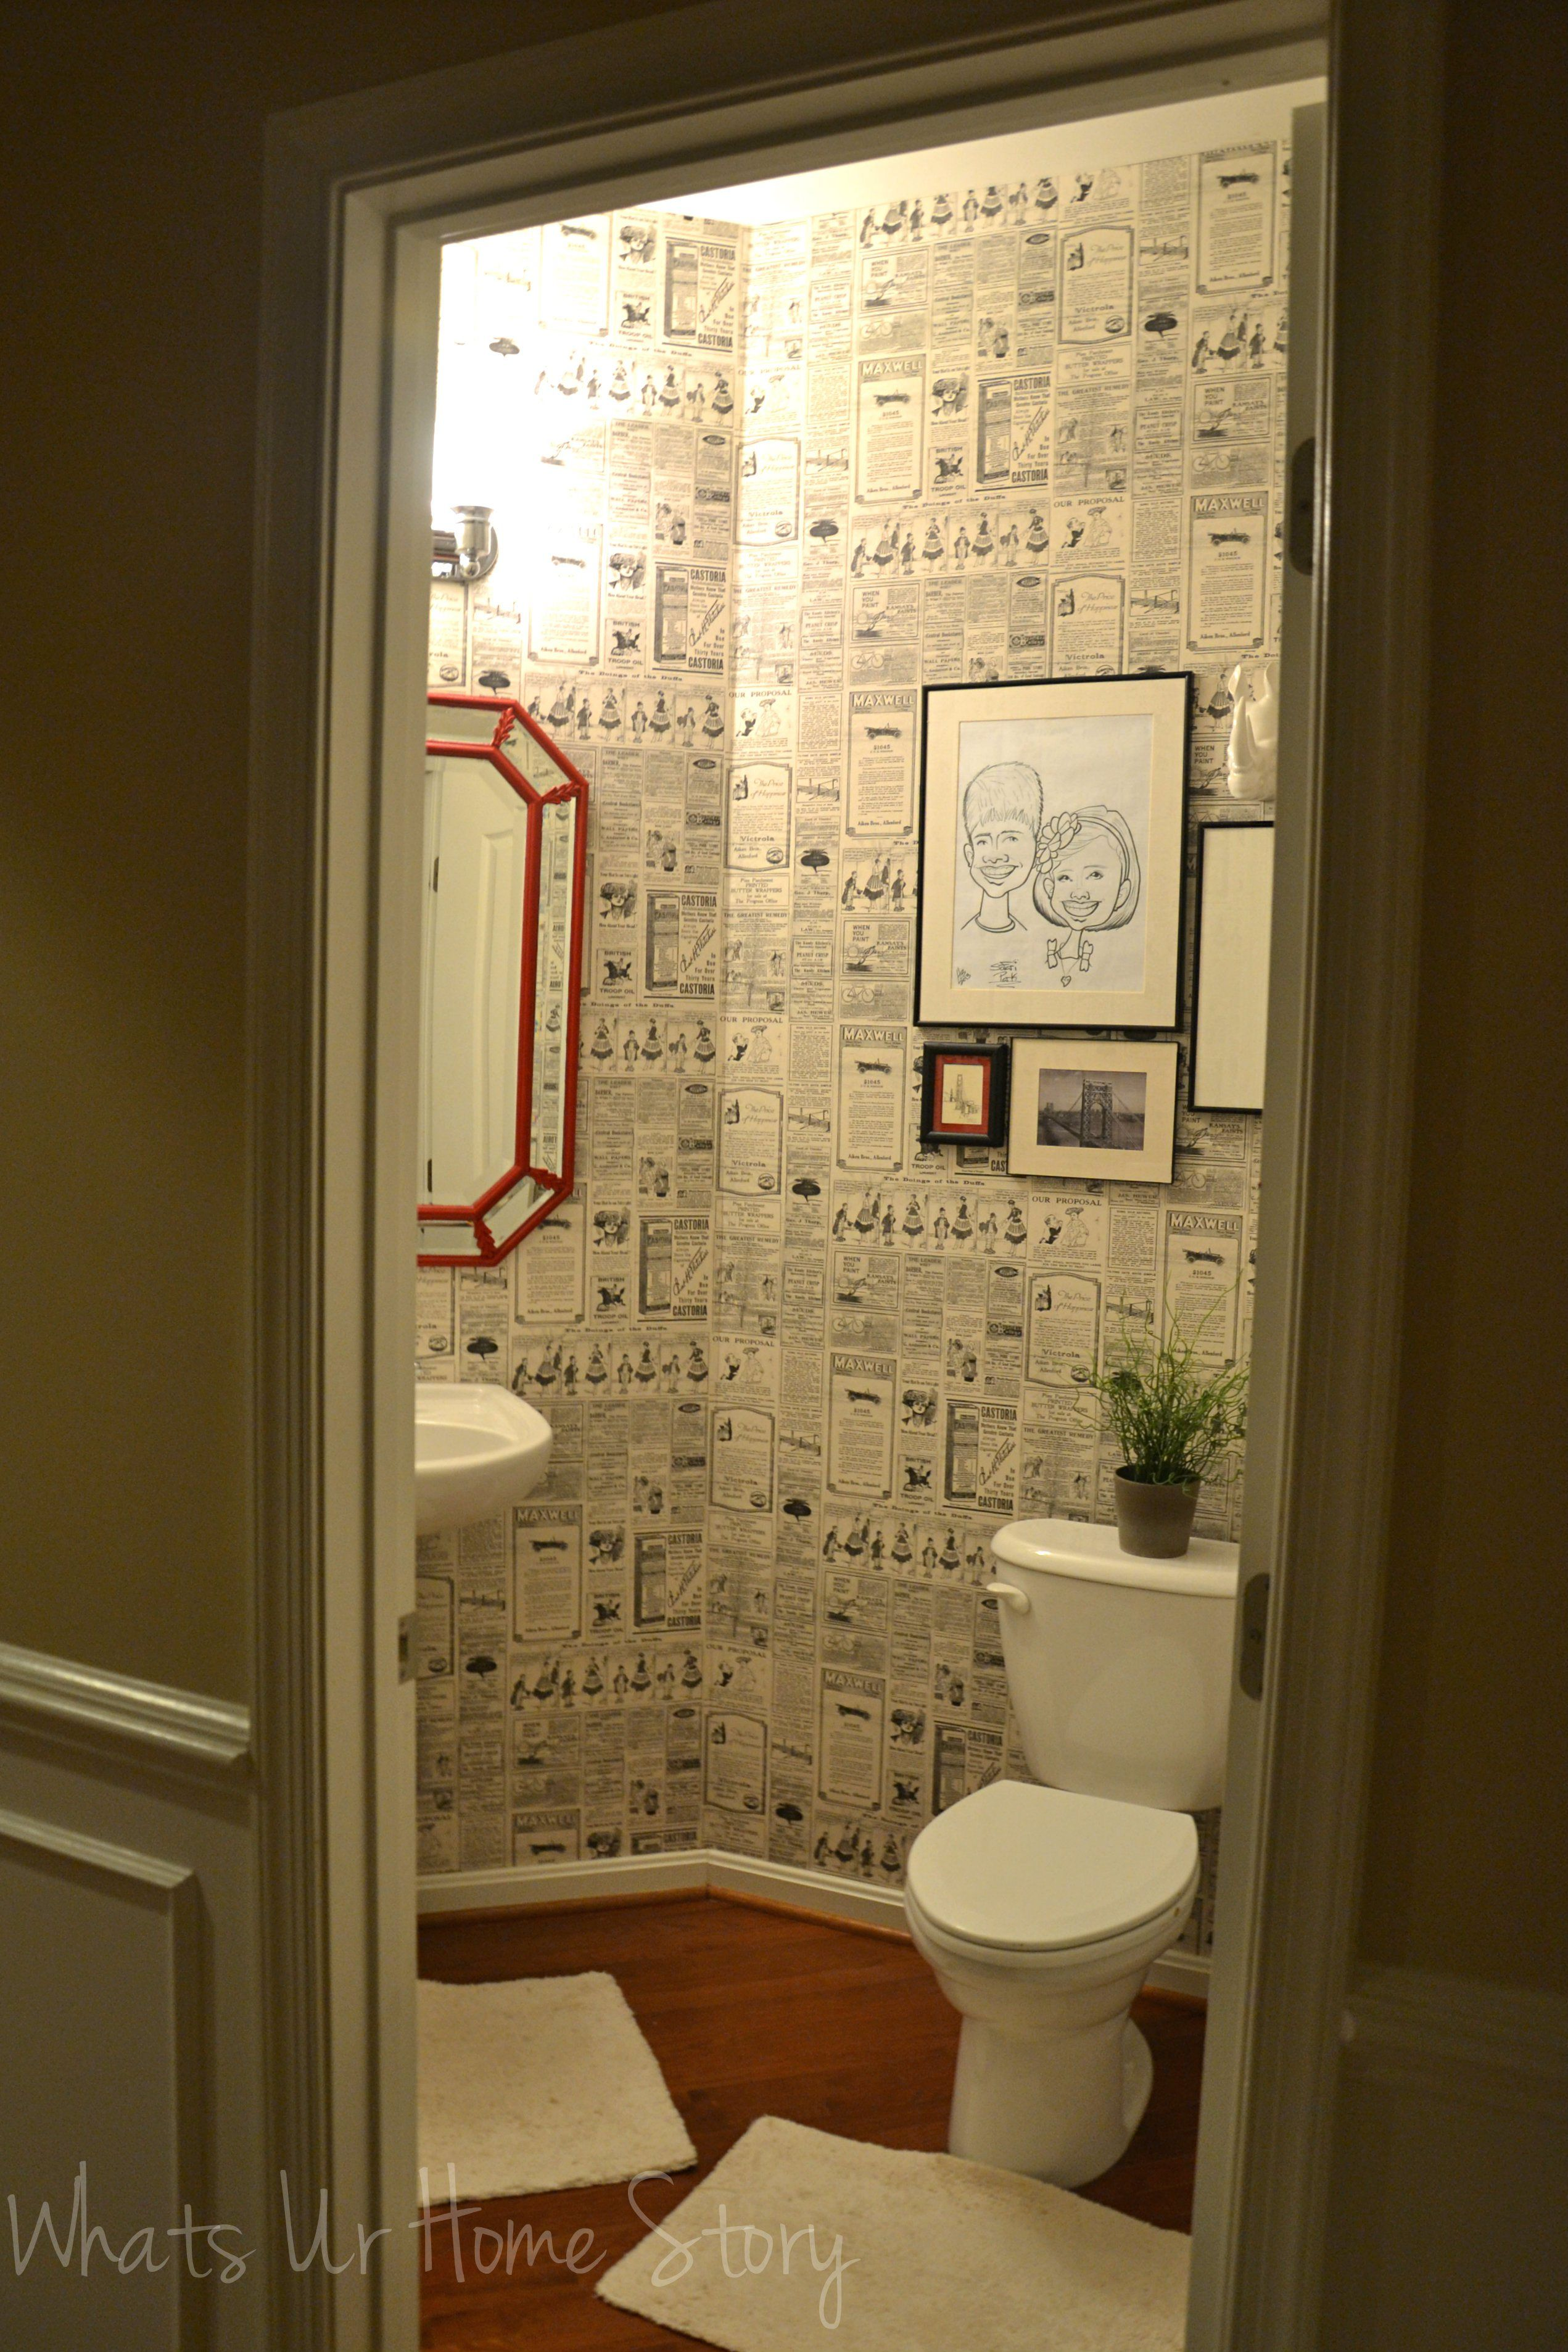 5 Ways to Make Your Walls Look Amazing | Ideas for the House ... Bathroom Lighting Up Or Down on bathroom sconce lighting, bathroom tube lighting, bathroom mirror lighting, bathroom can lighting, bathroom floor lighting, bathroom strip lighting, bathroom indirect lighting, bathroom accent lighting, bathroom cove lighting, bathroom soffit lighting,